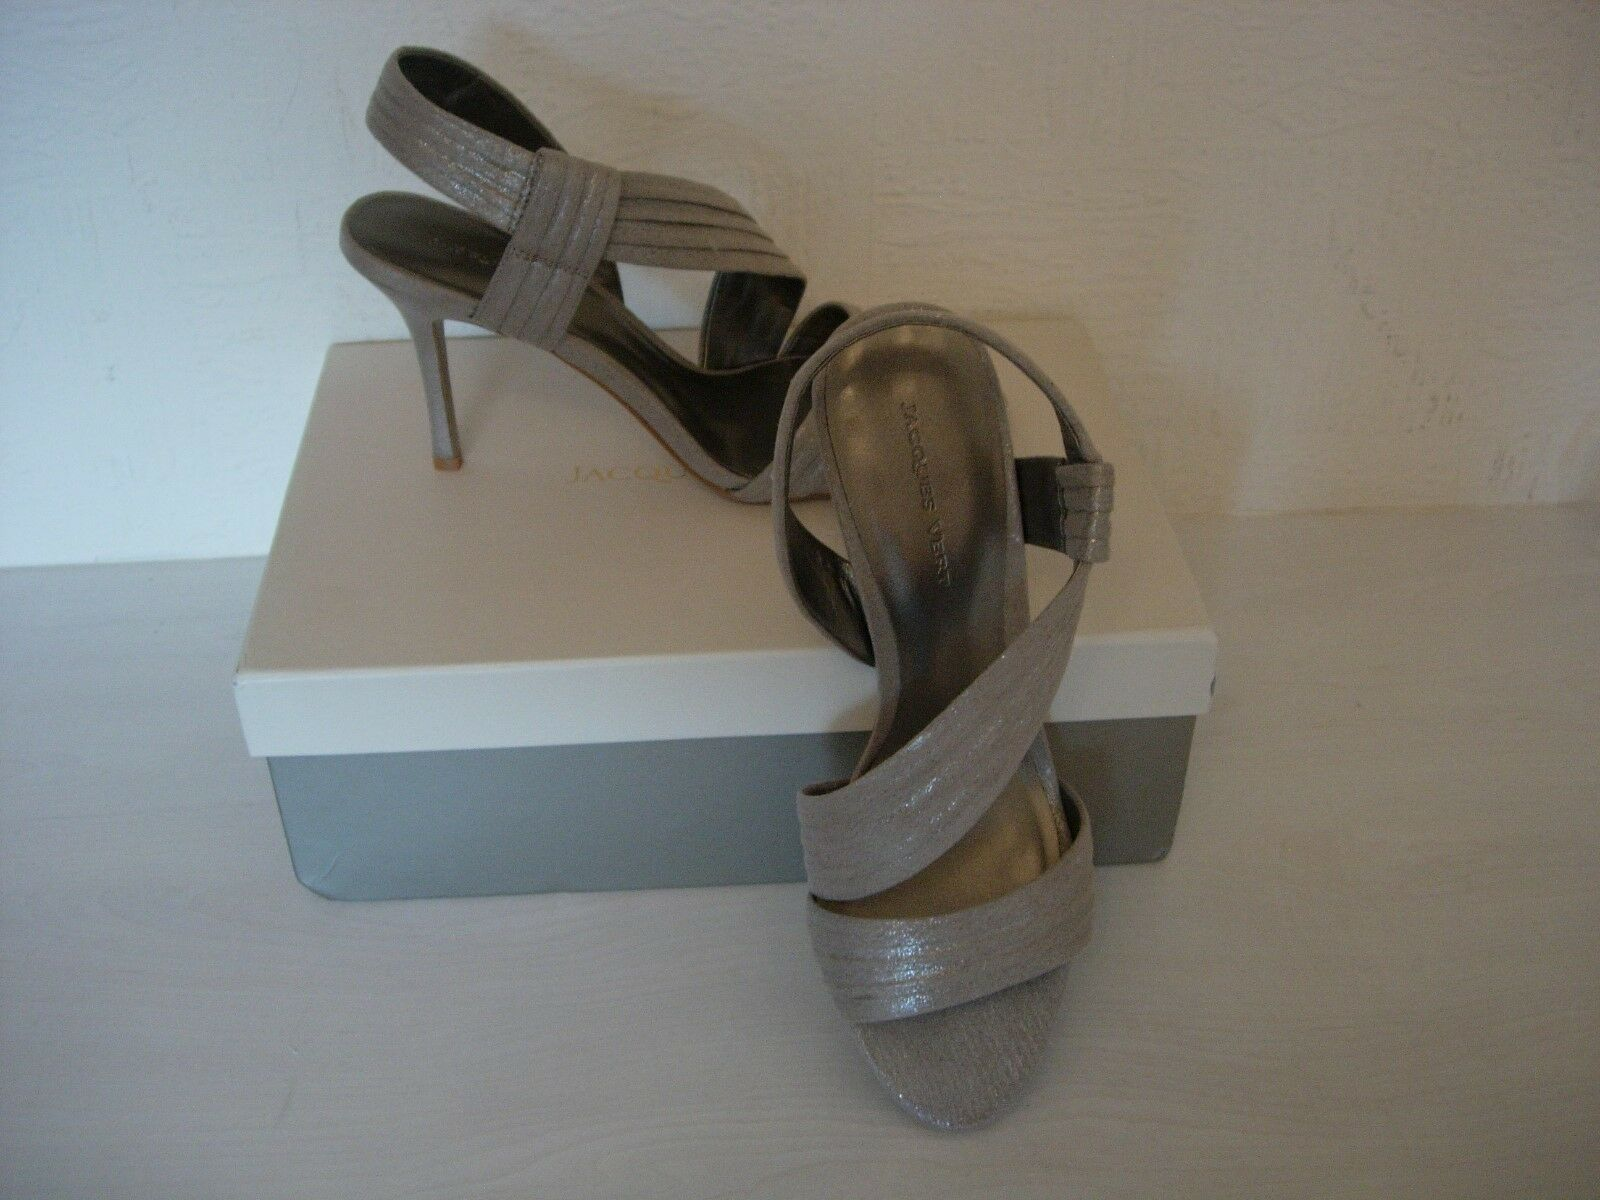 JACQUES -NEW Grün METALLIC schuhe SANDALS -NEUTRAL Größe 6 -NEW JACQUES 60ecac